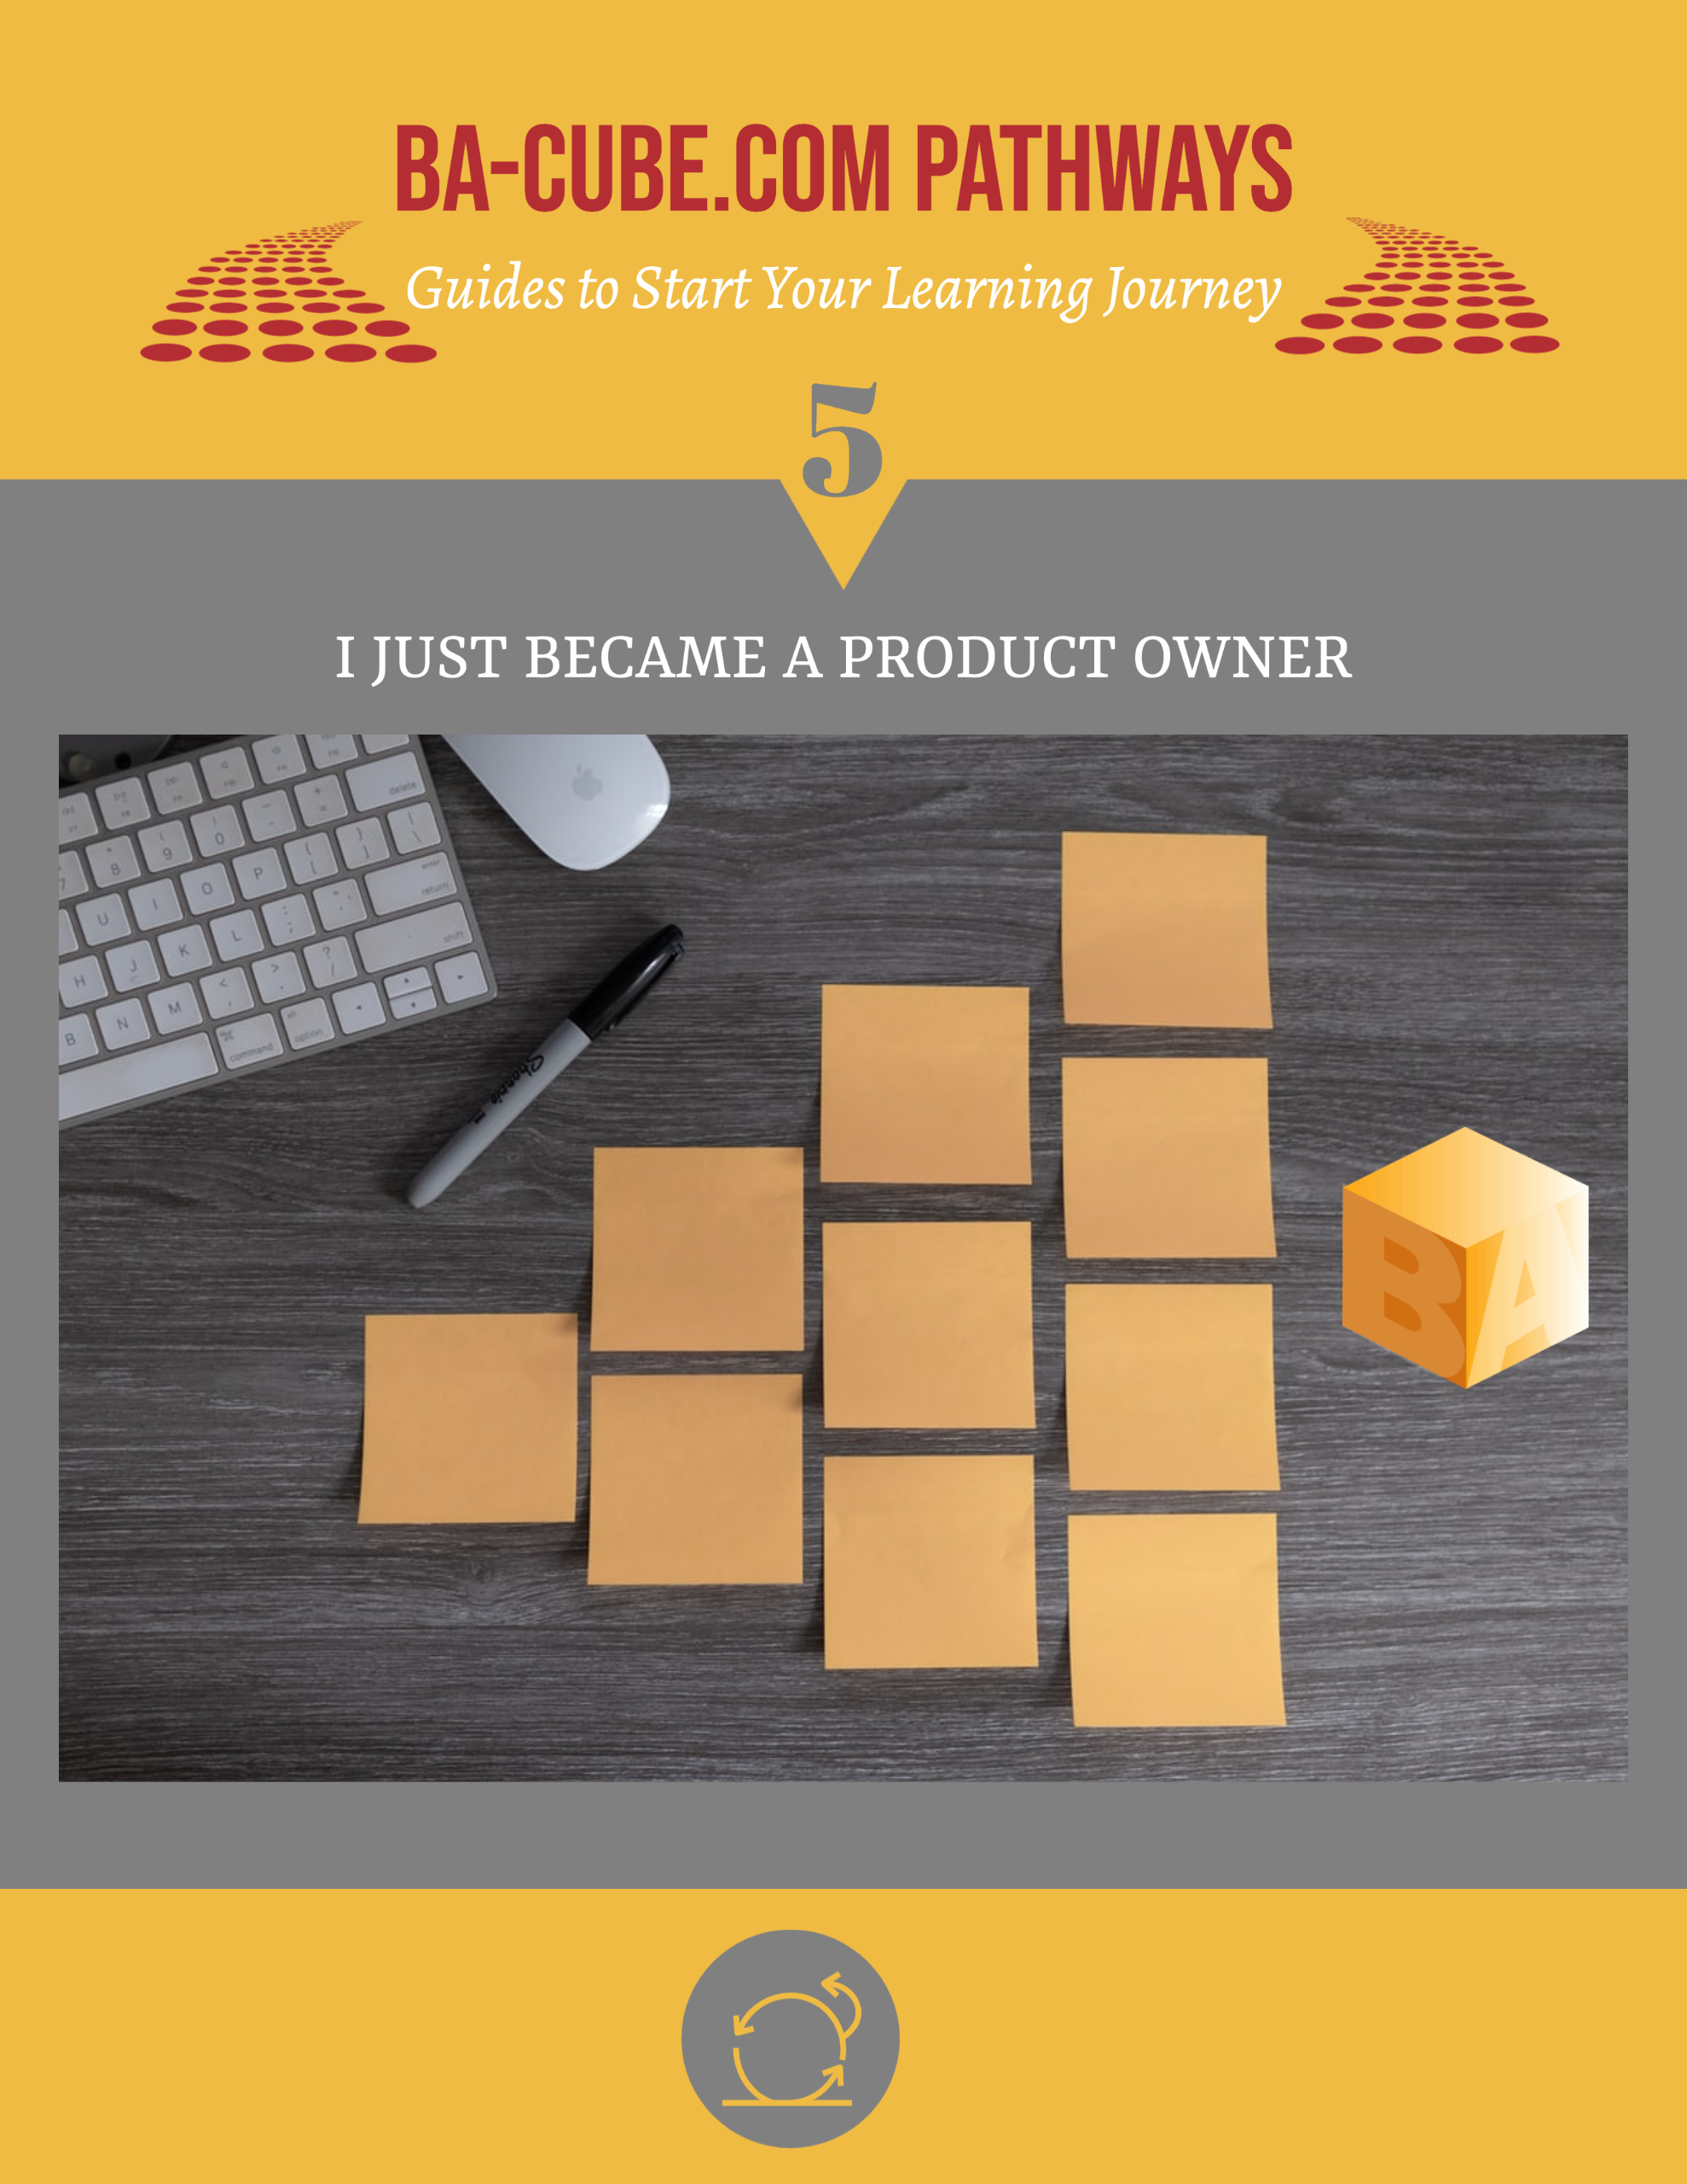 Pathway 5: I just became a Product Owner!